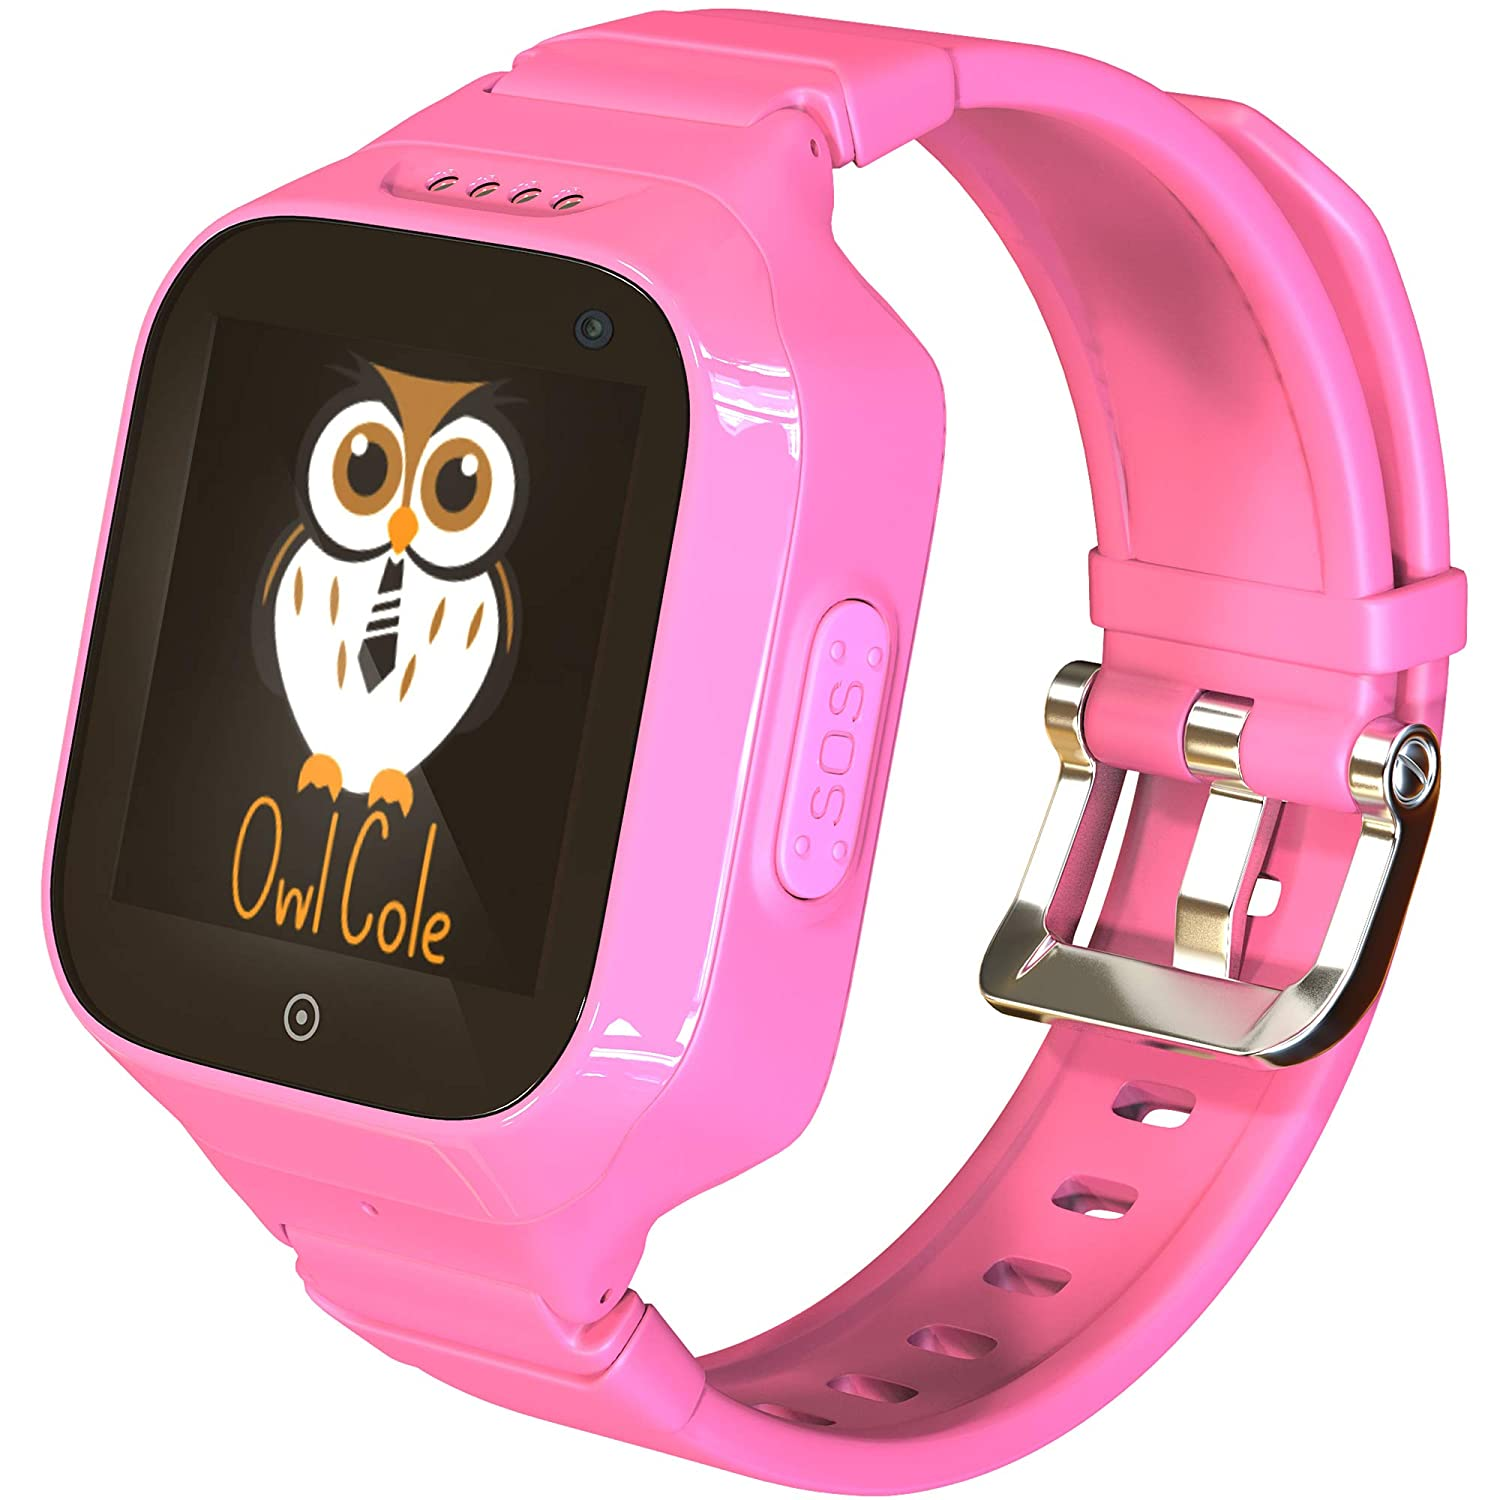 Owl Cole Kids Smart Watch Review